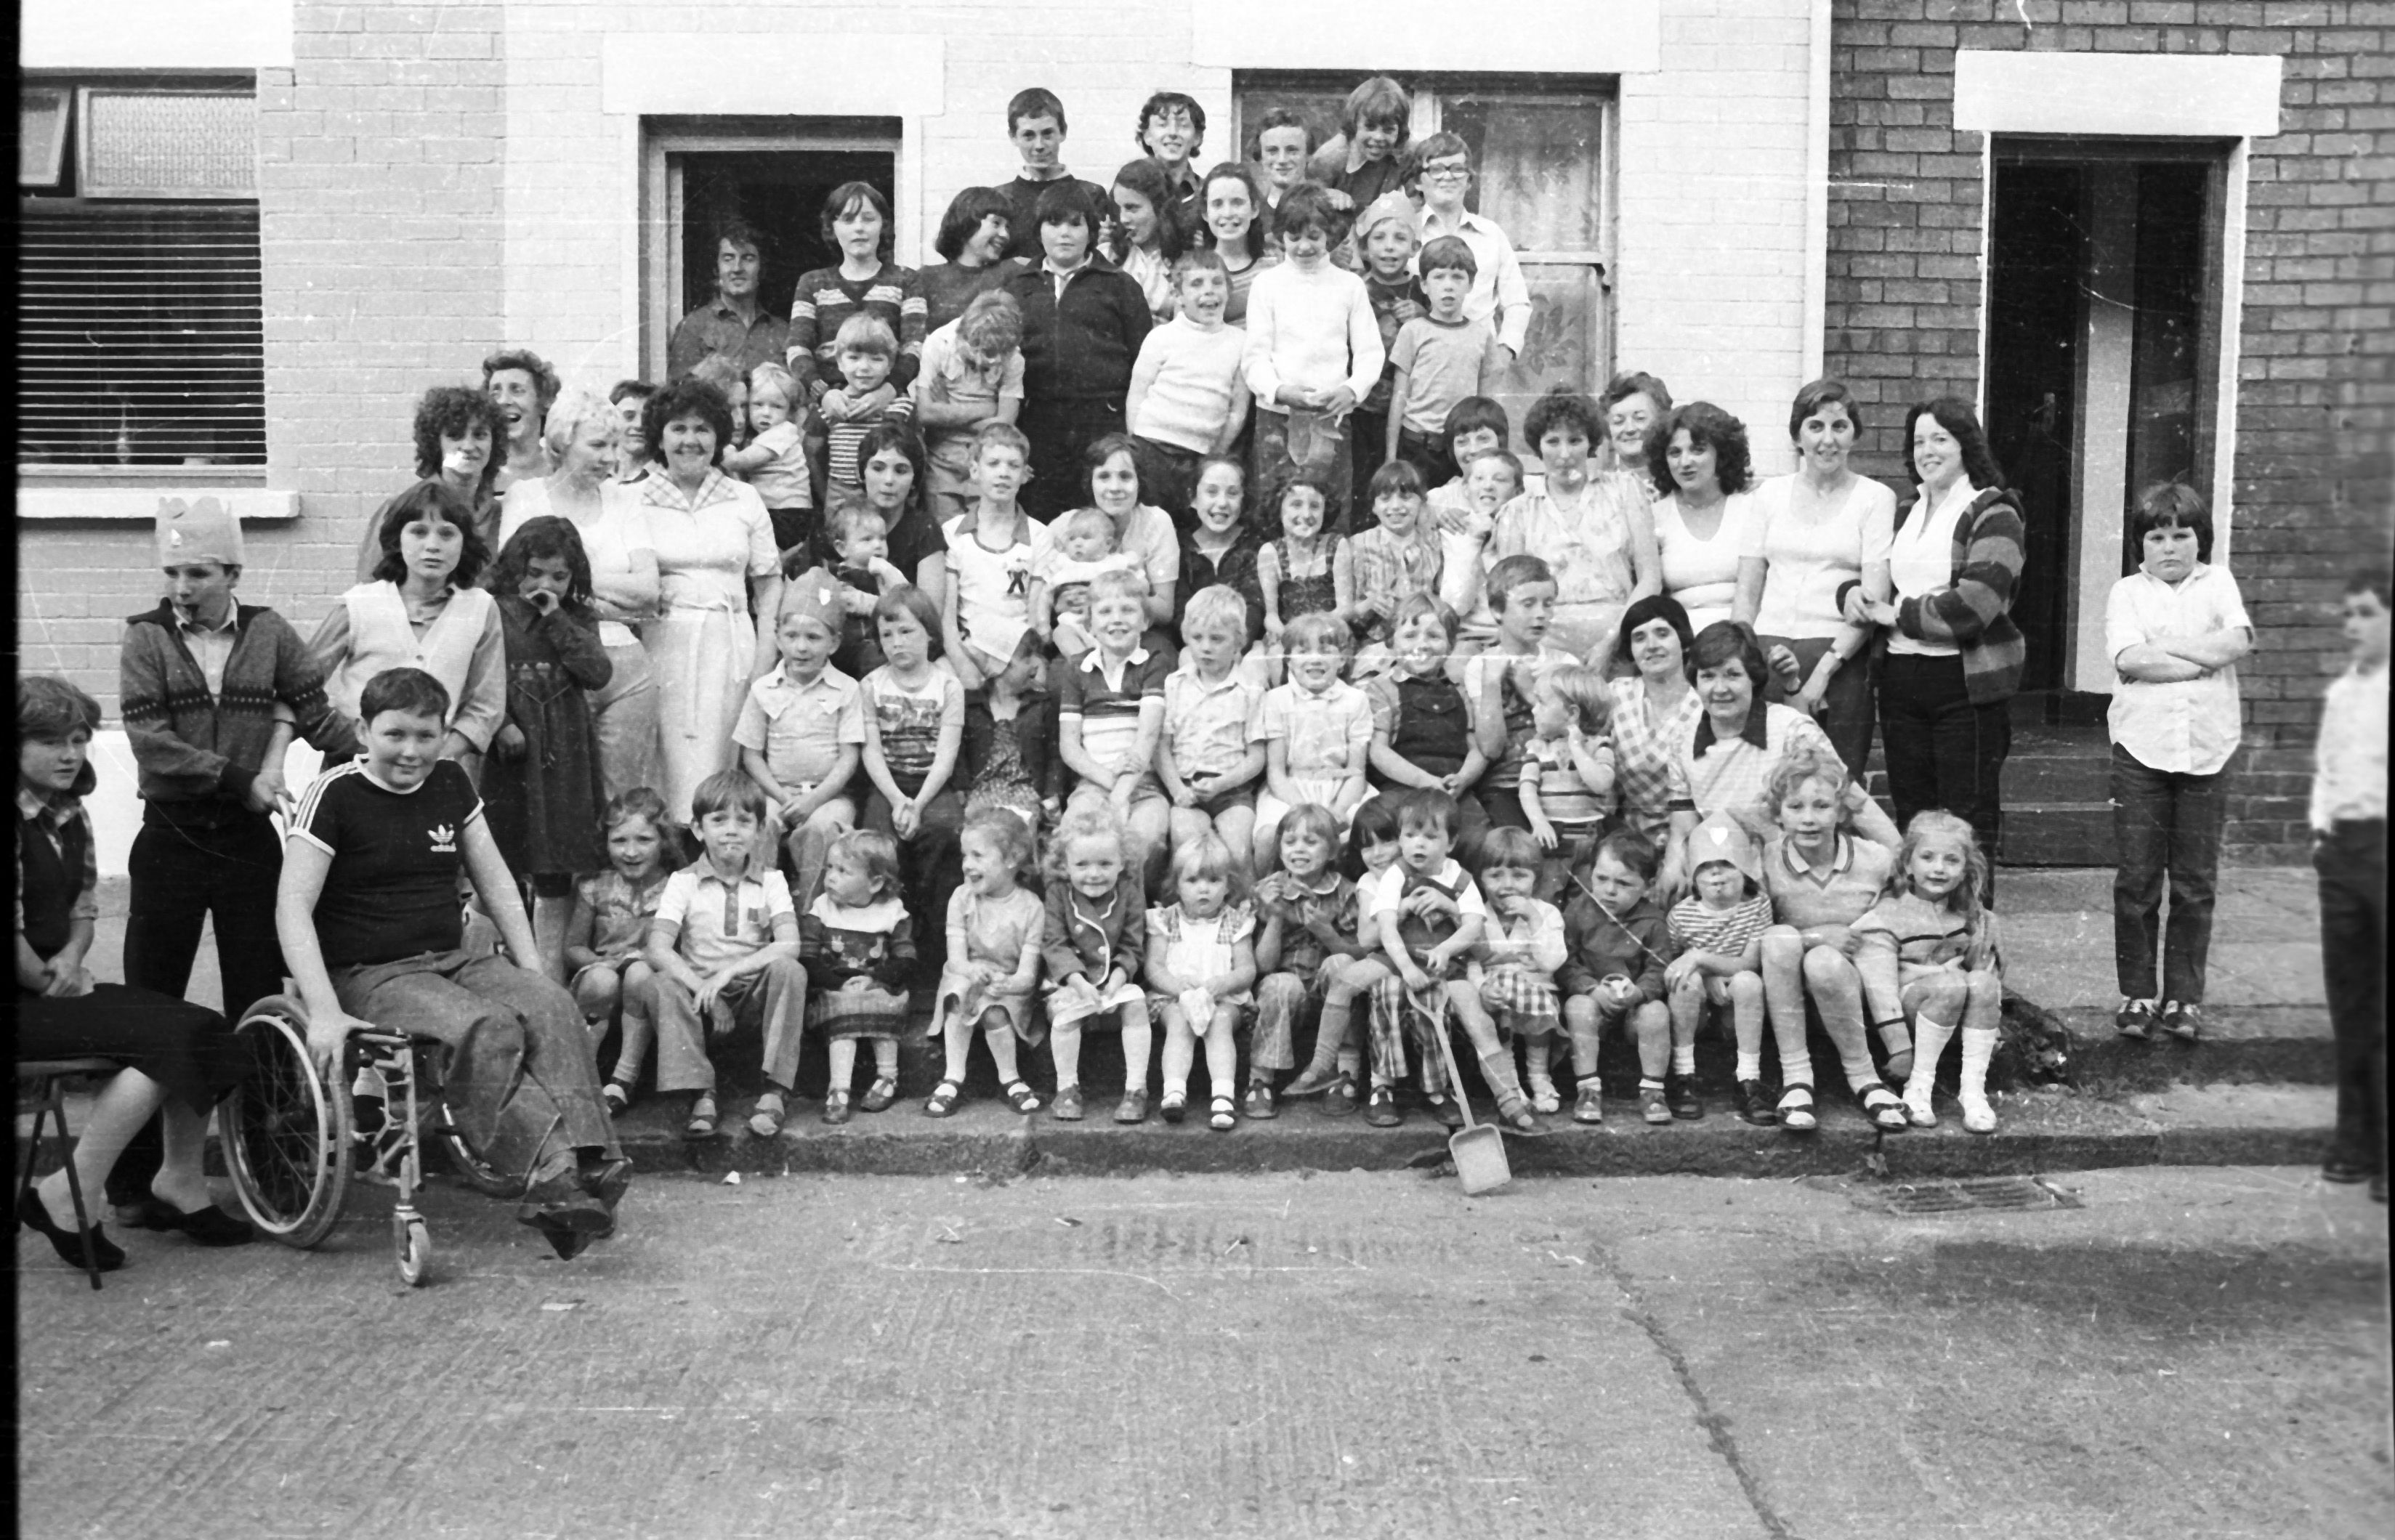 LIFE ON THE STREET: It was fun and games as the summer of '79 came to a close, with this street party in Forest Street